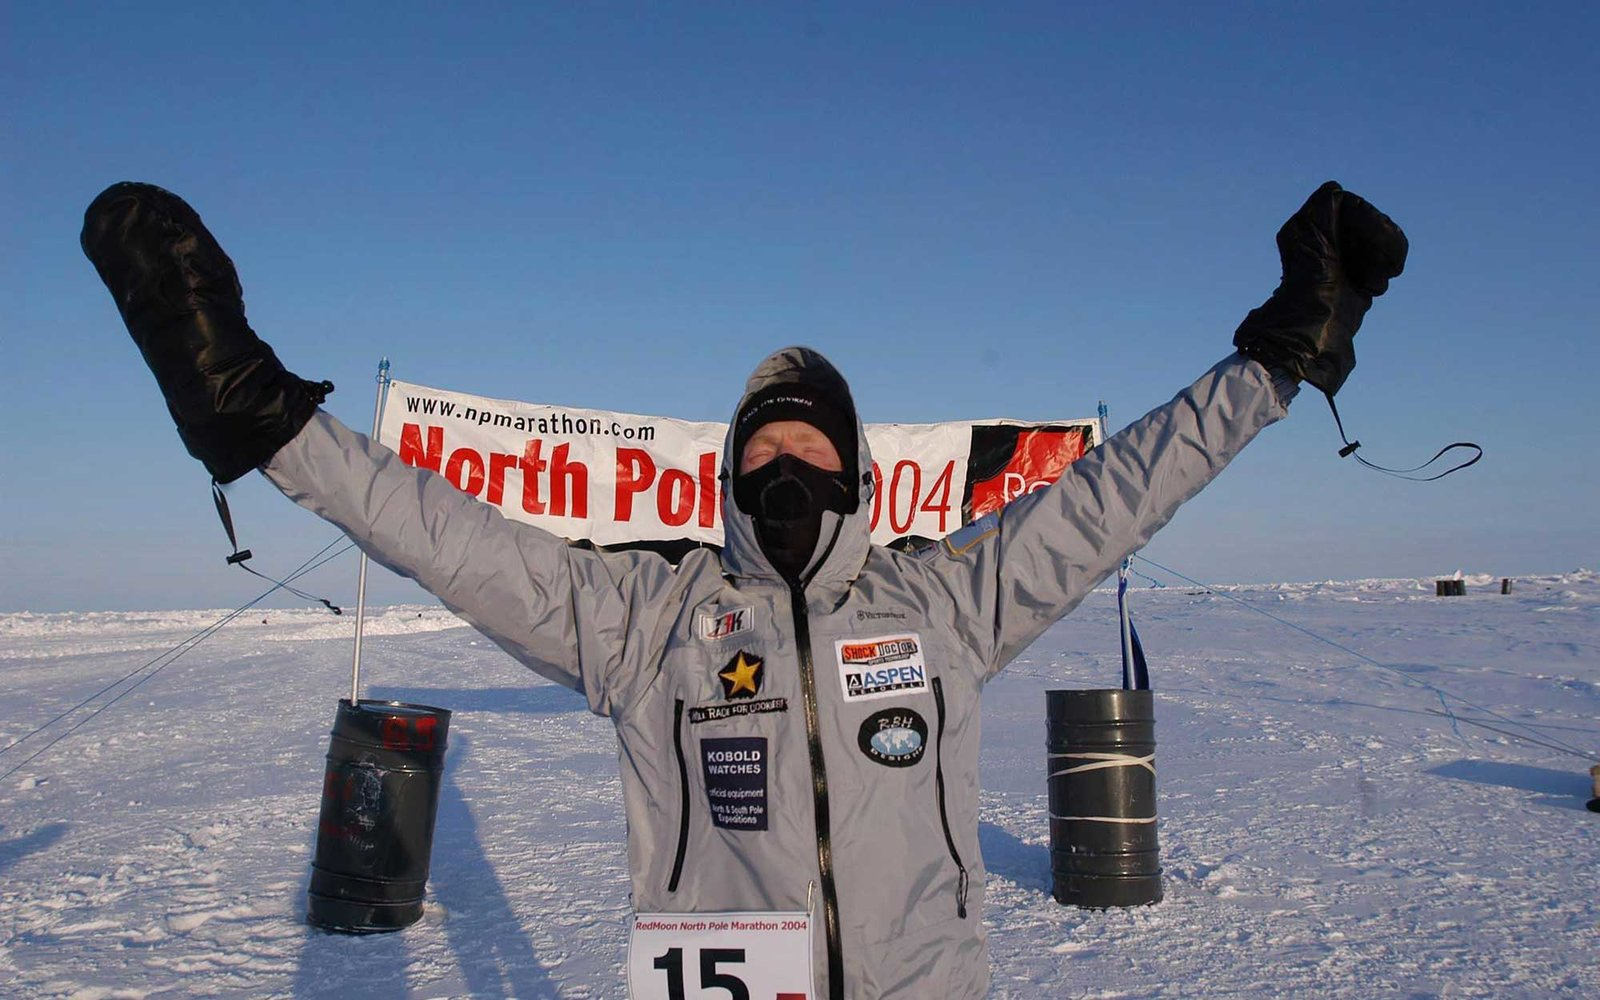 FECHJ1 American Sean Burch reacts after winning the Red Moon North Pole Marathon 2004, Saturday, 10 April 2004. The 26.2 mile race started at midnight in temperatures of -25C. Burch led home a field of fifteen in a time of 3.43. EPA/Mike King / HO UK AND